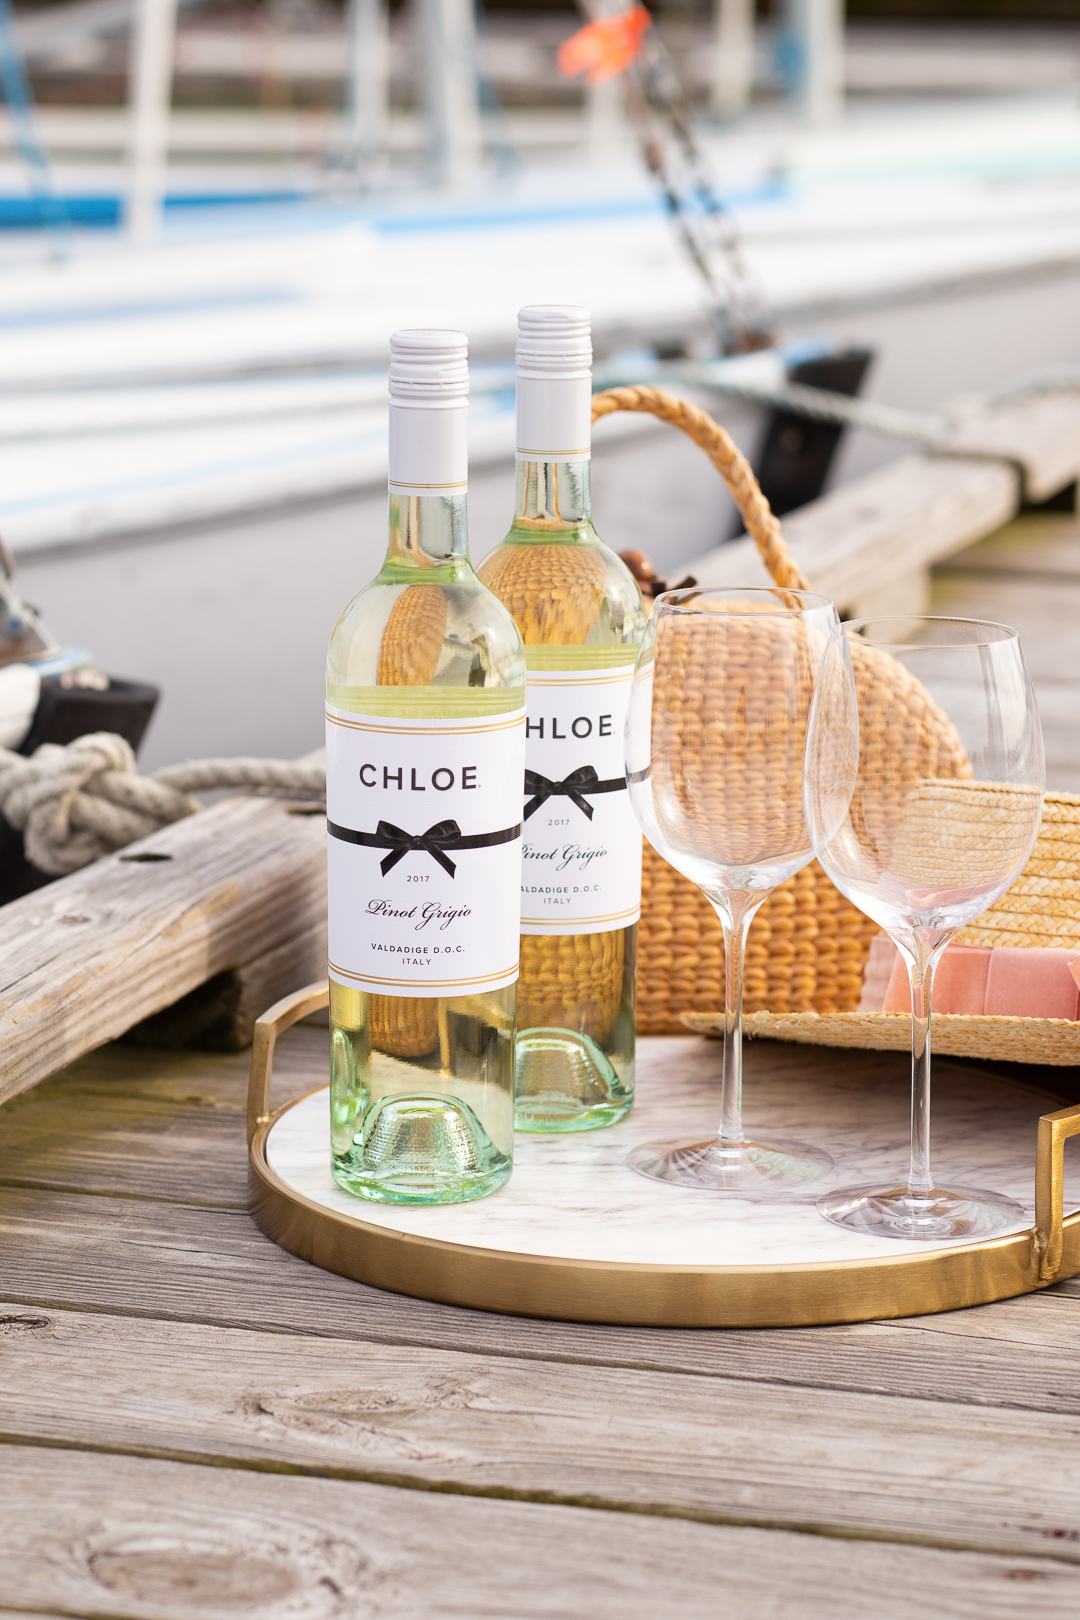 Pinot Grigio From Chloe Wine Collection